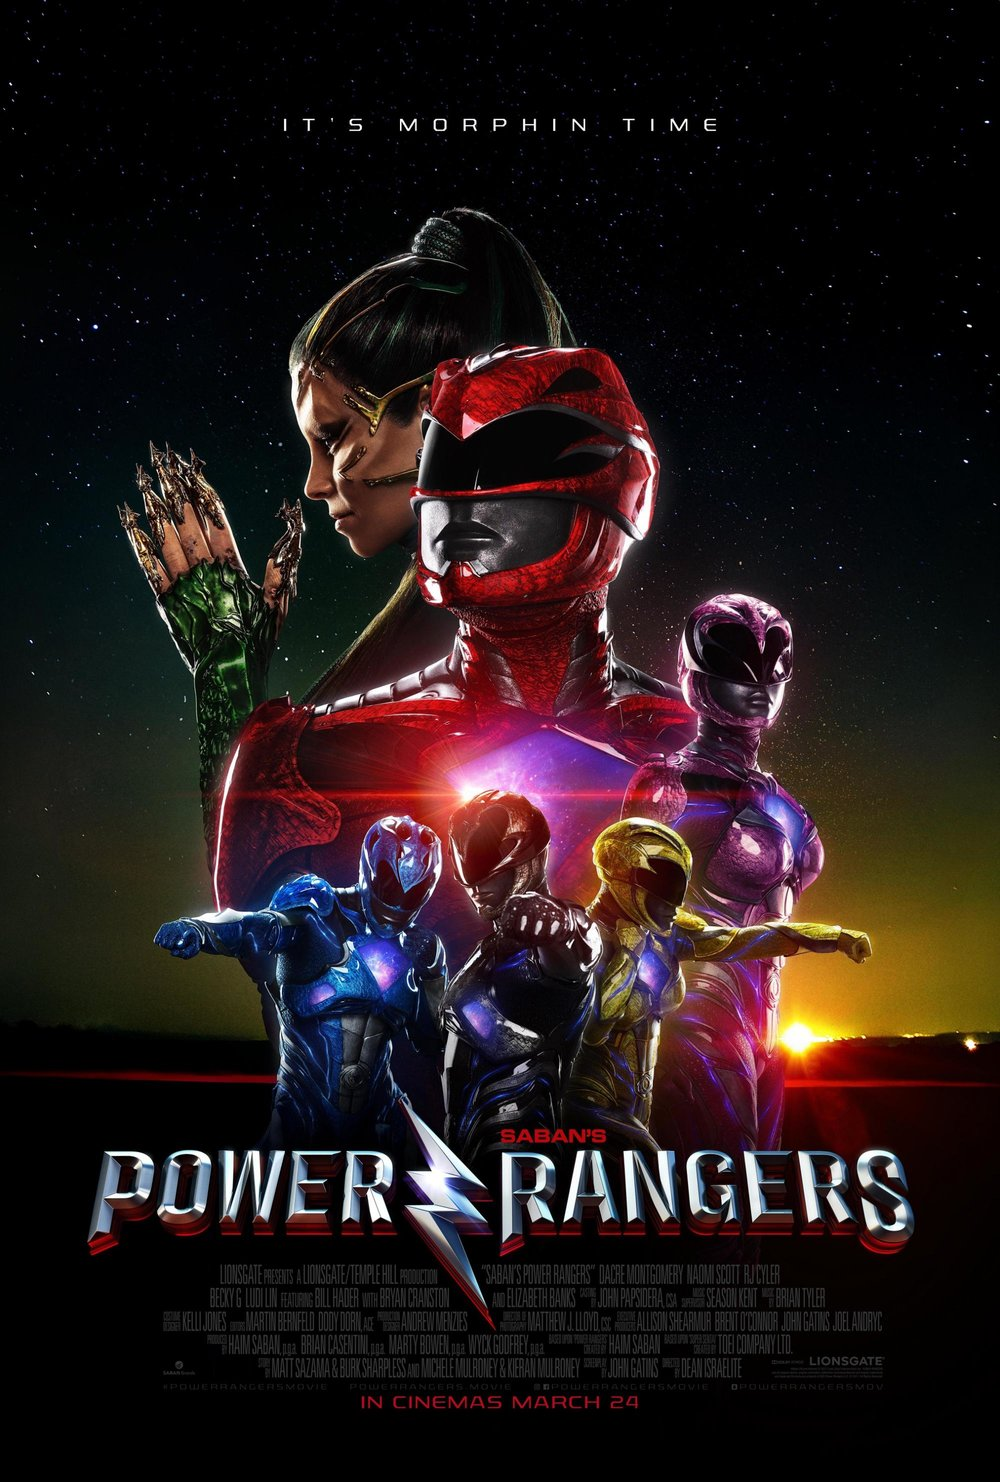 new-power-rangers-trailers-offer-fun-new-footage-of-the-rangers-in-action1